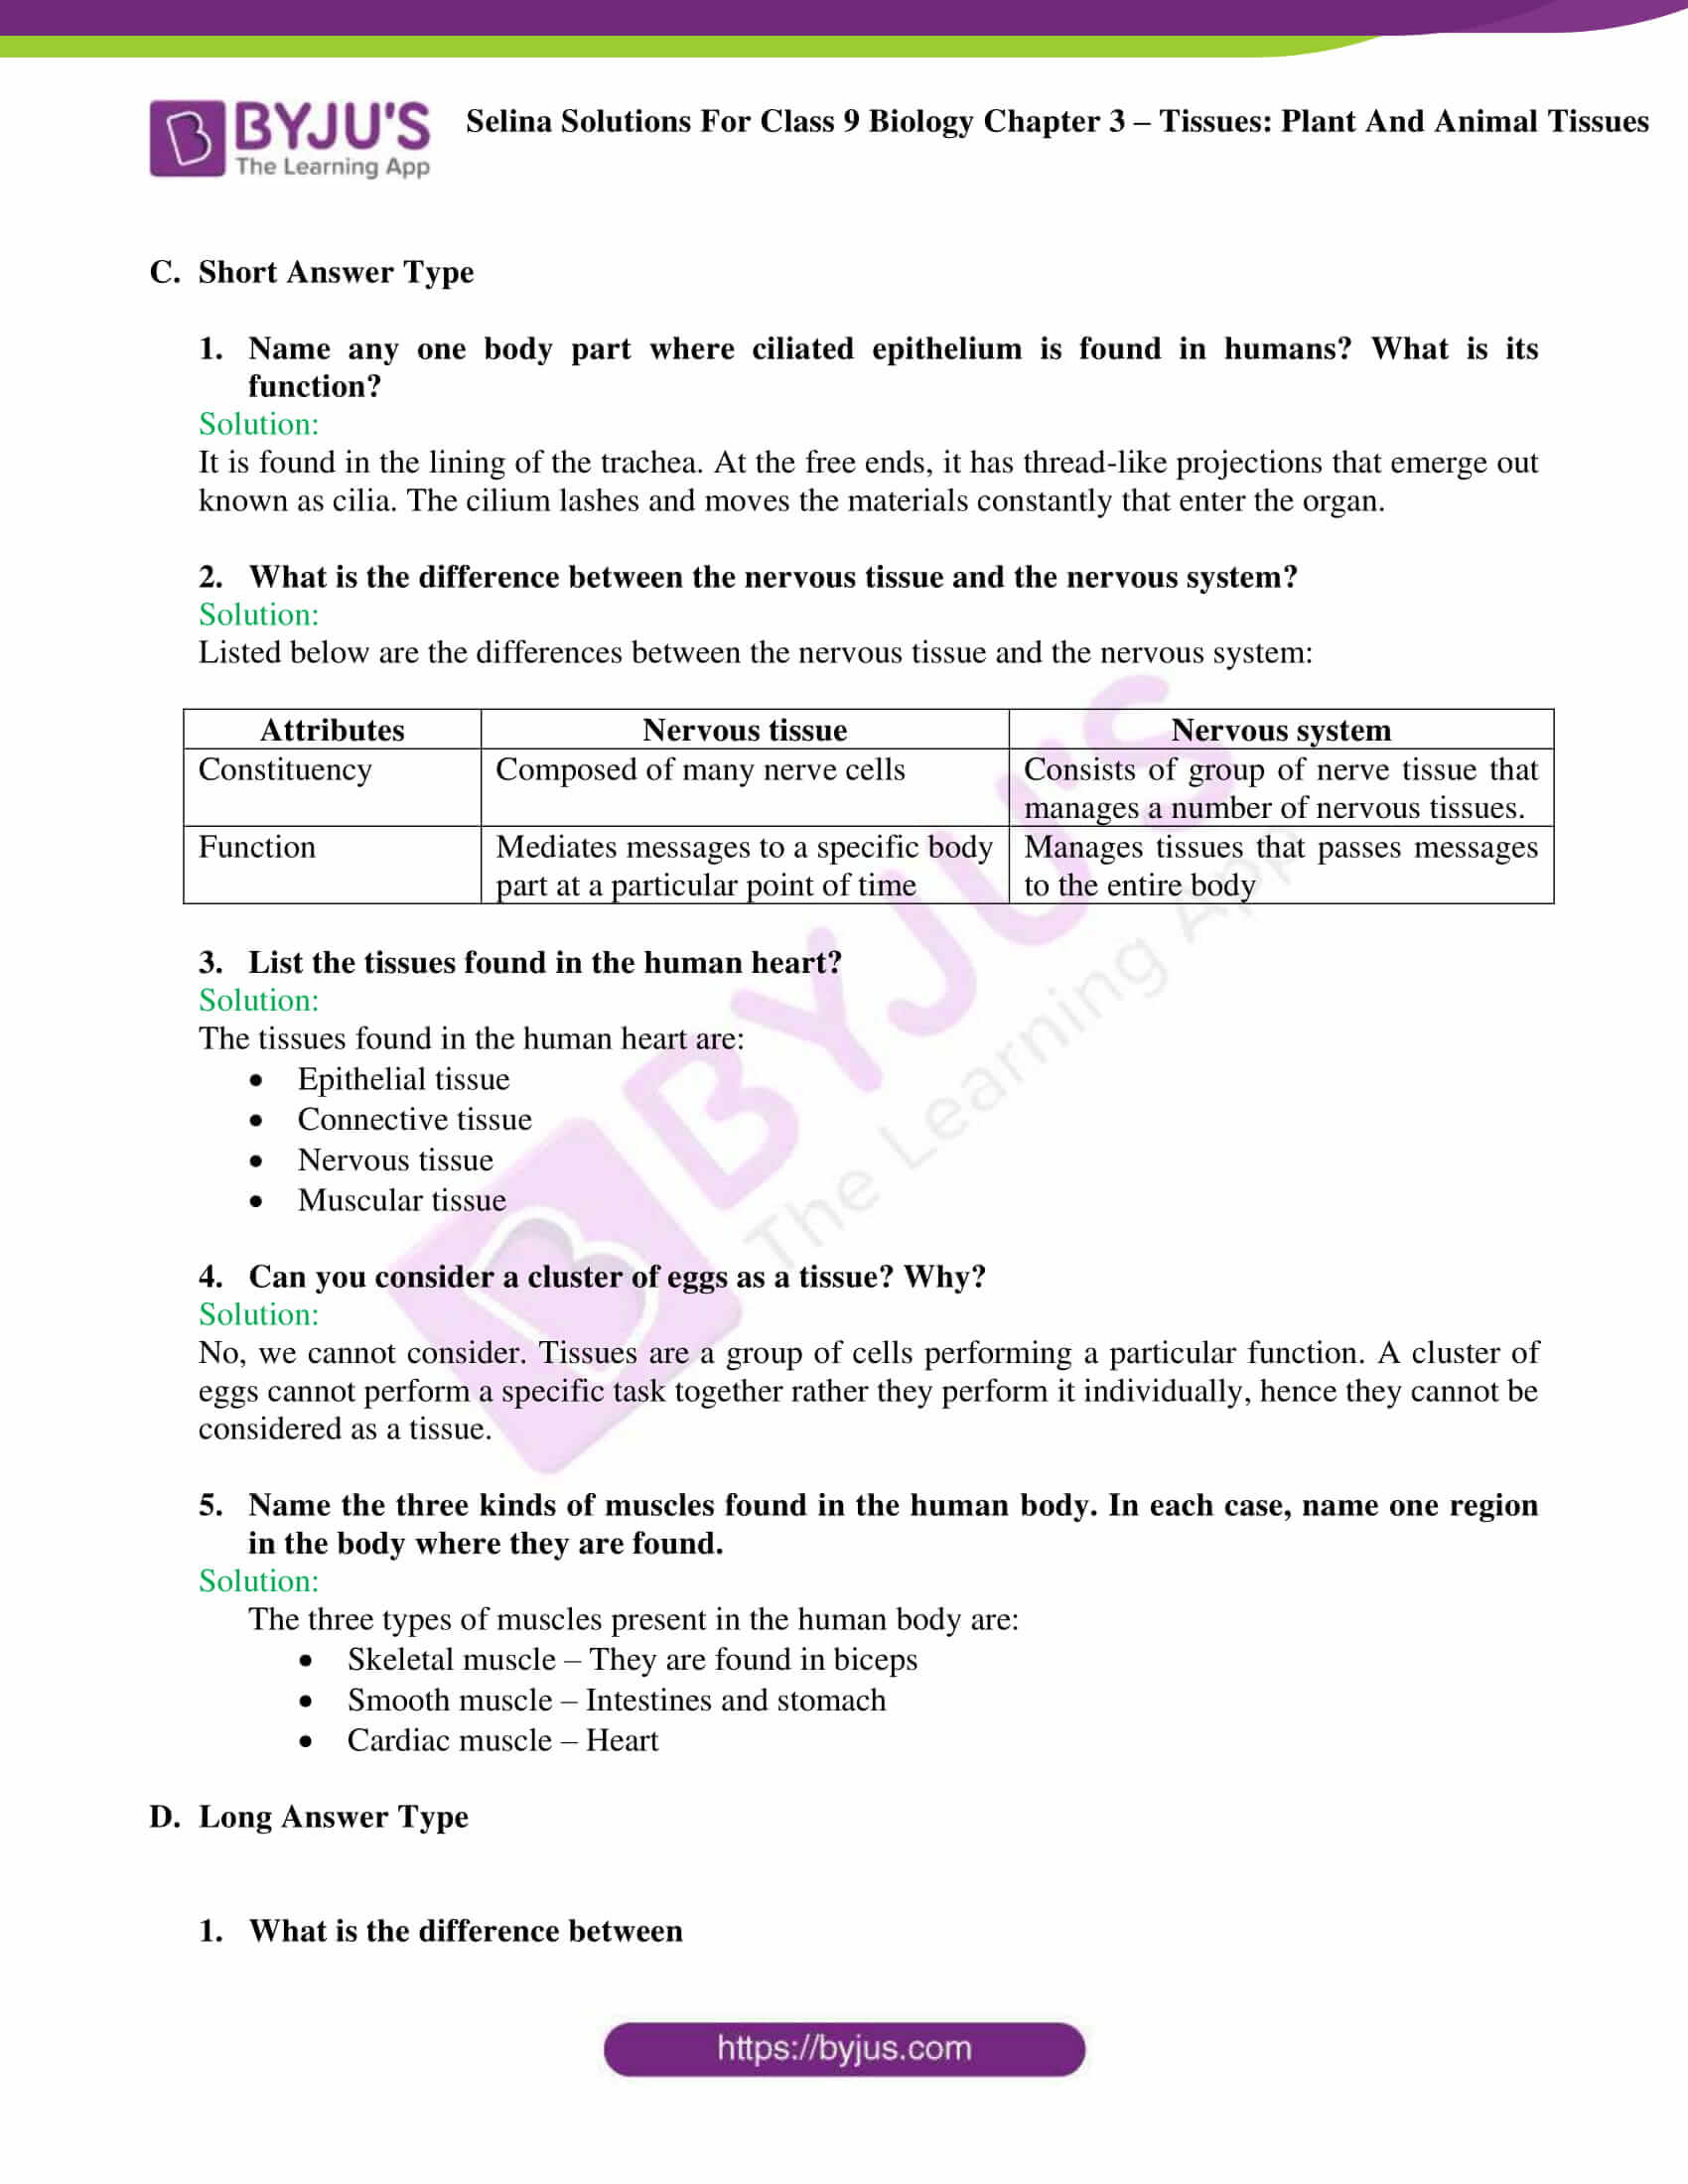 Selina Solutions For Class 9 Biology Chapter 3 Tissues Plant And Animal Tissues part 07